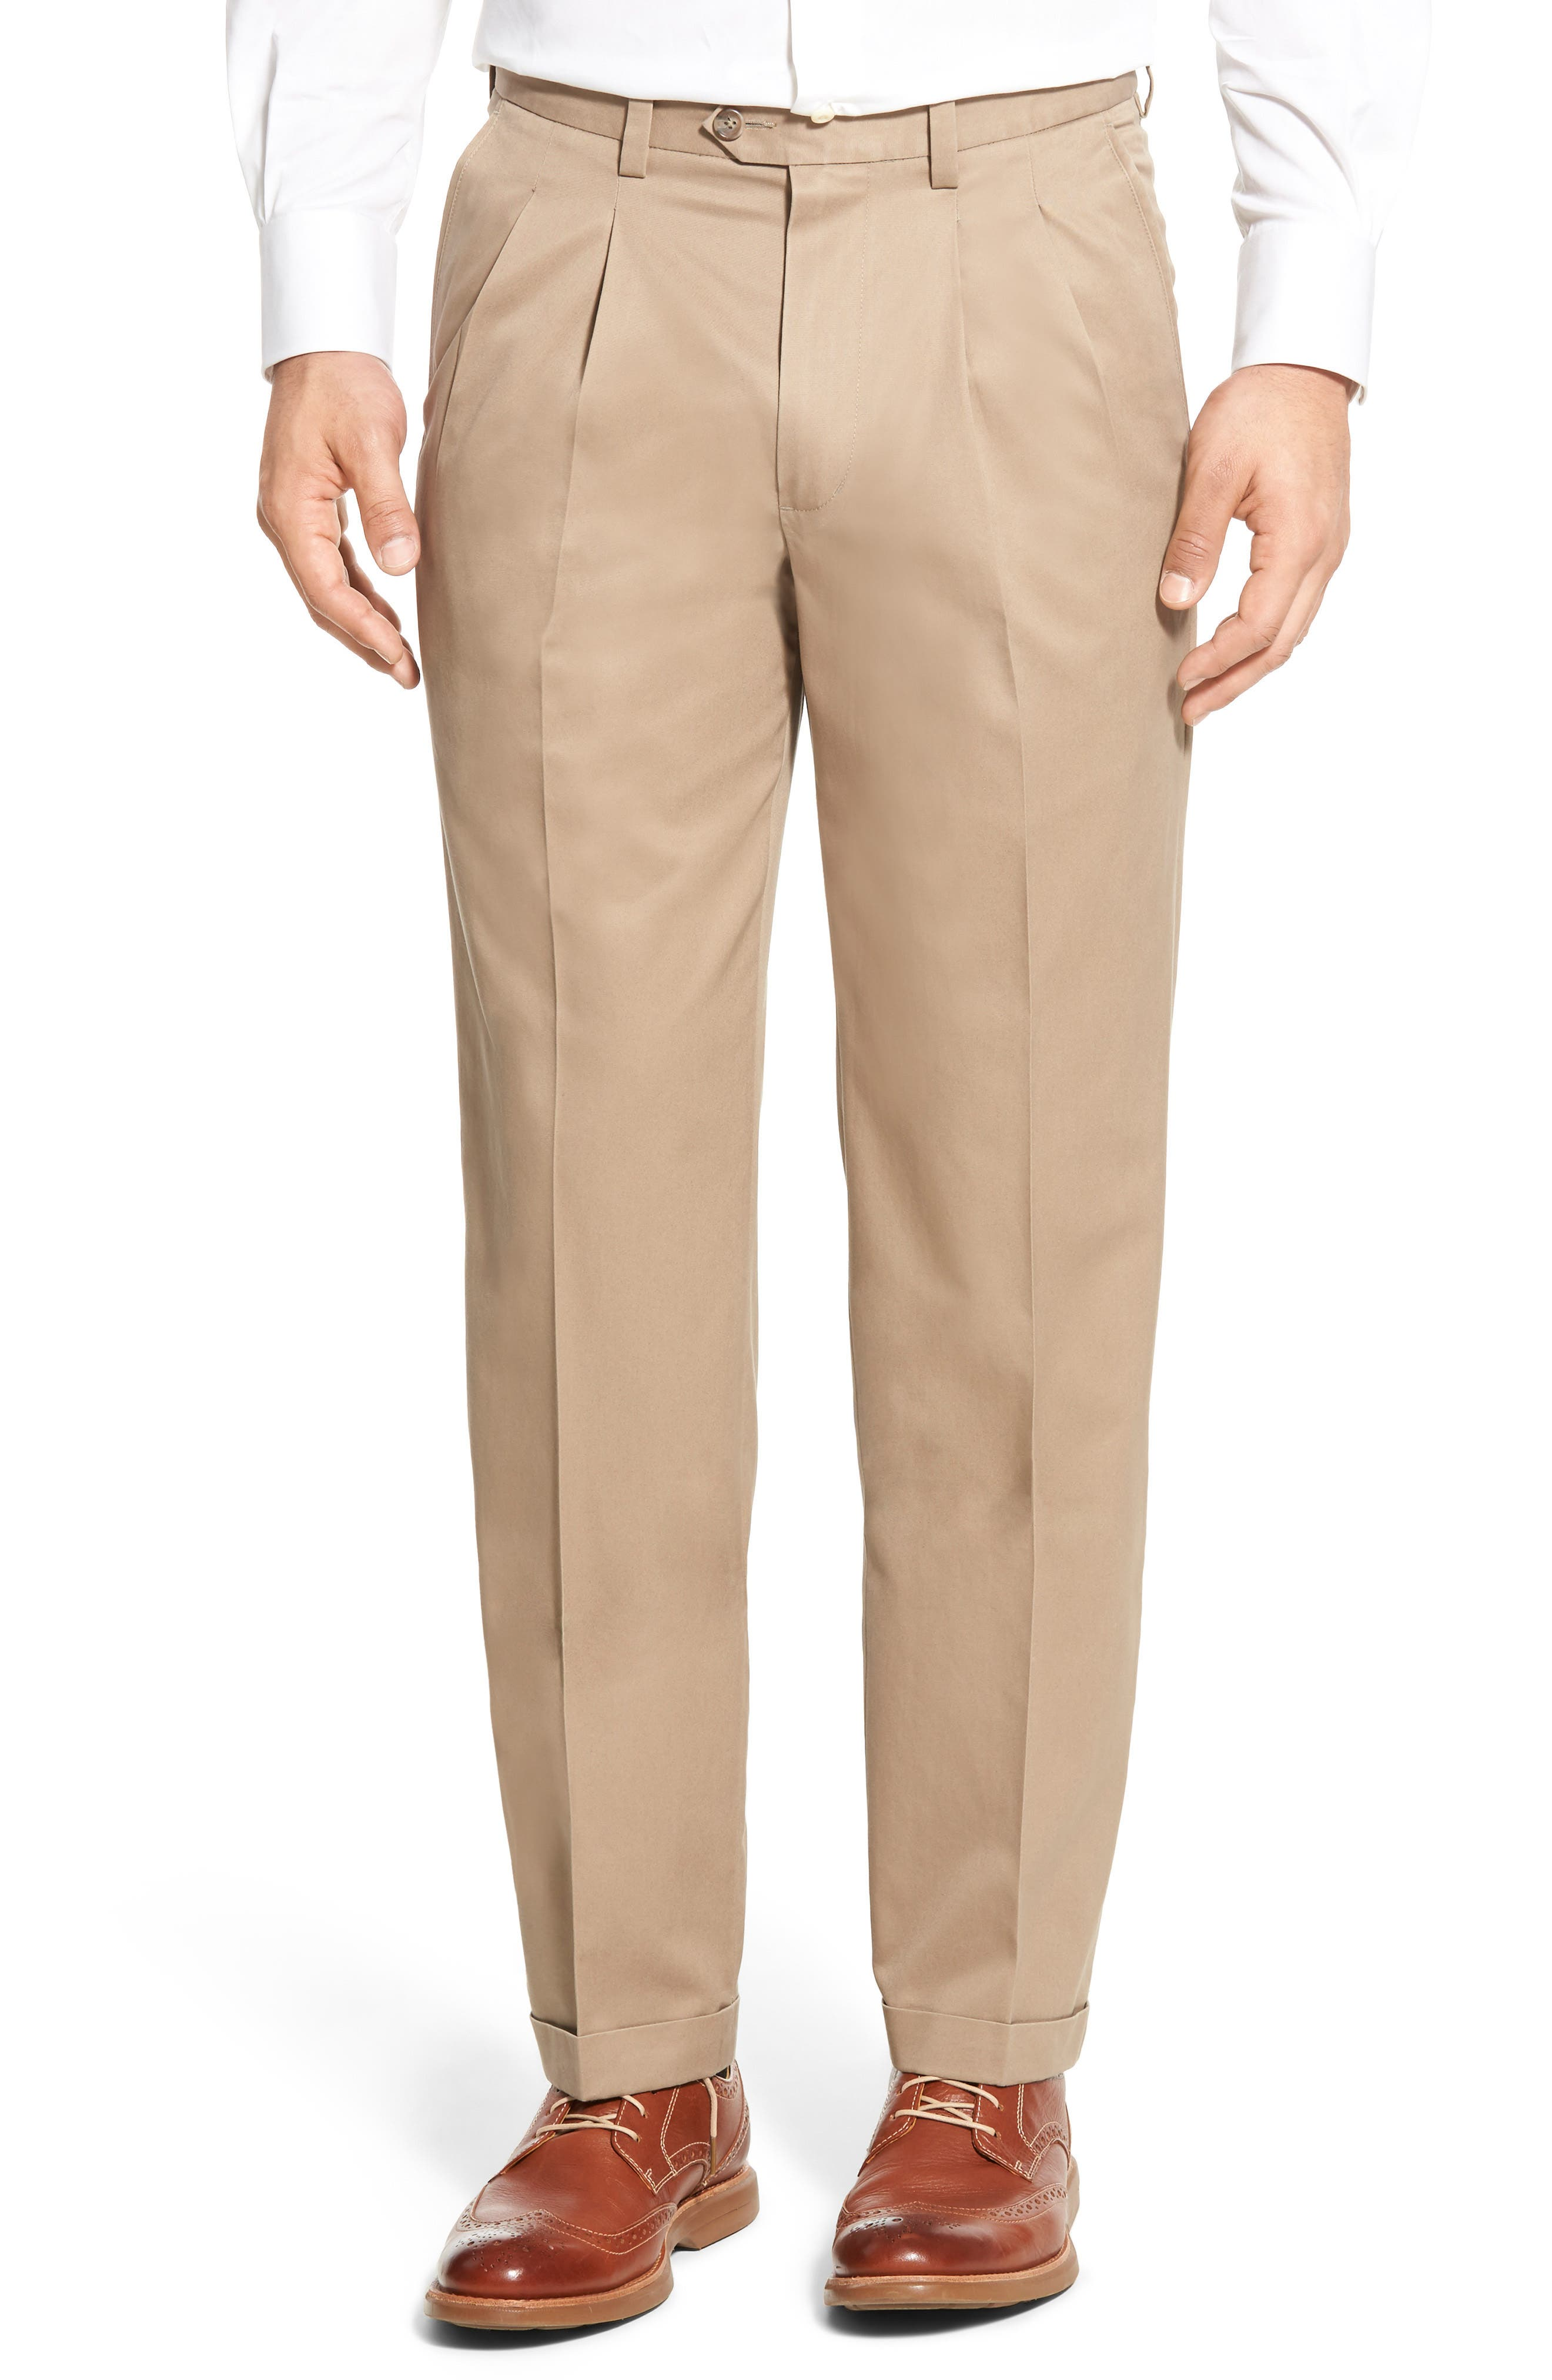 Men's Pleated Big & Tall Pants & Chinos | Nordstrom